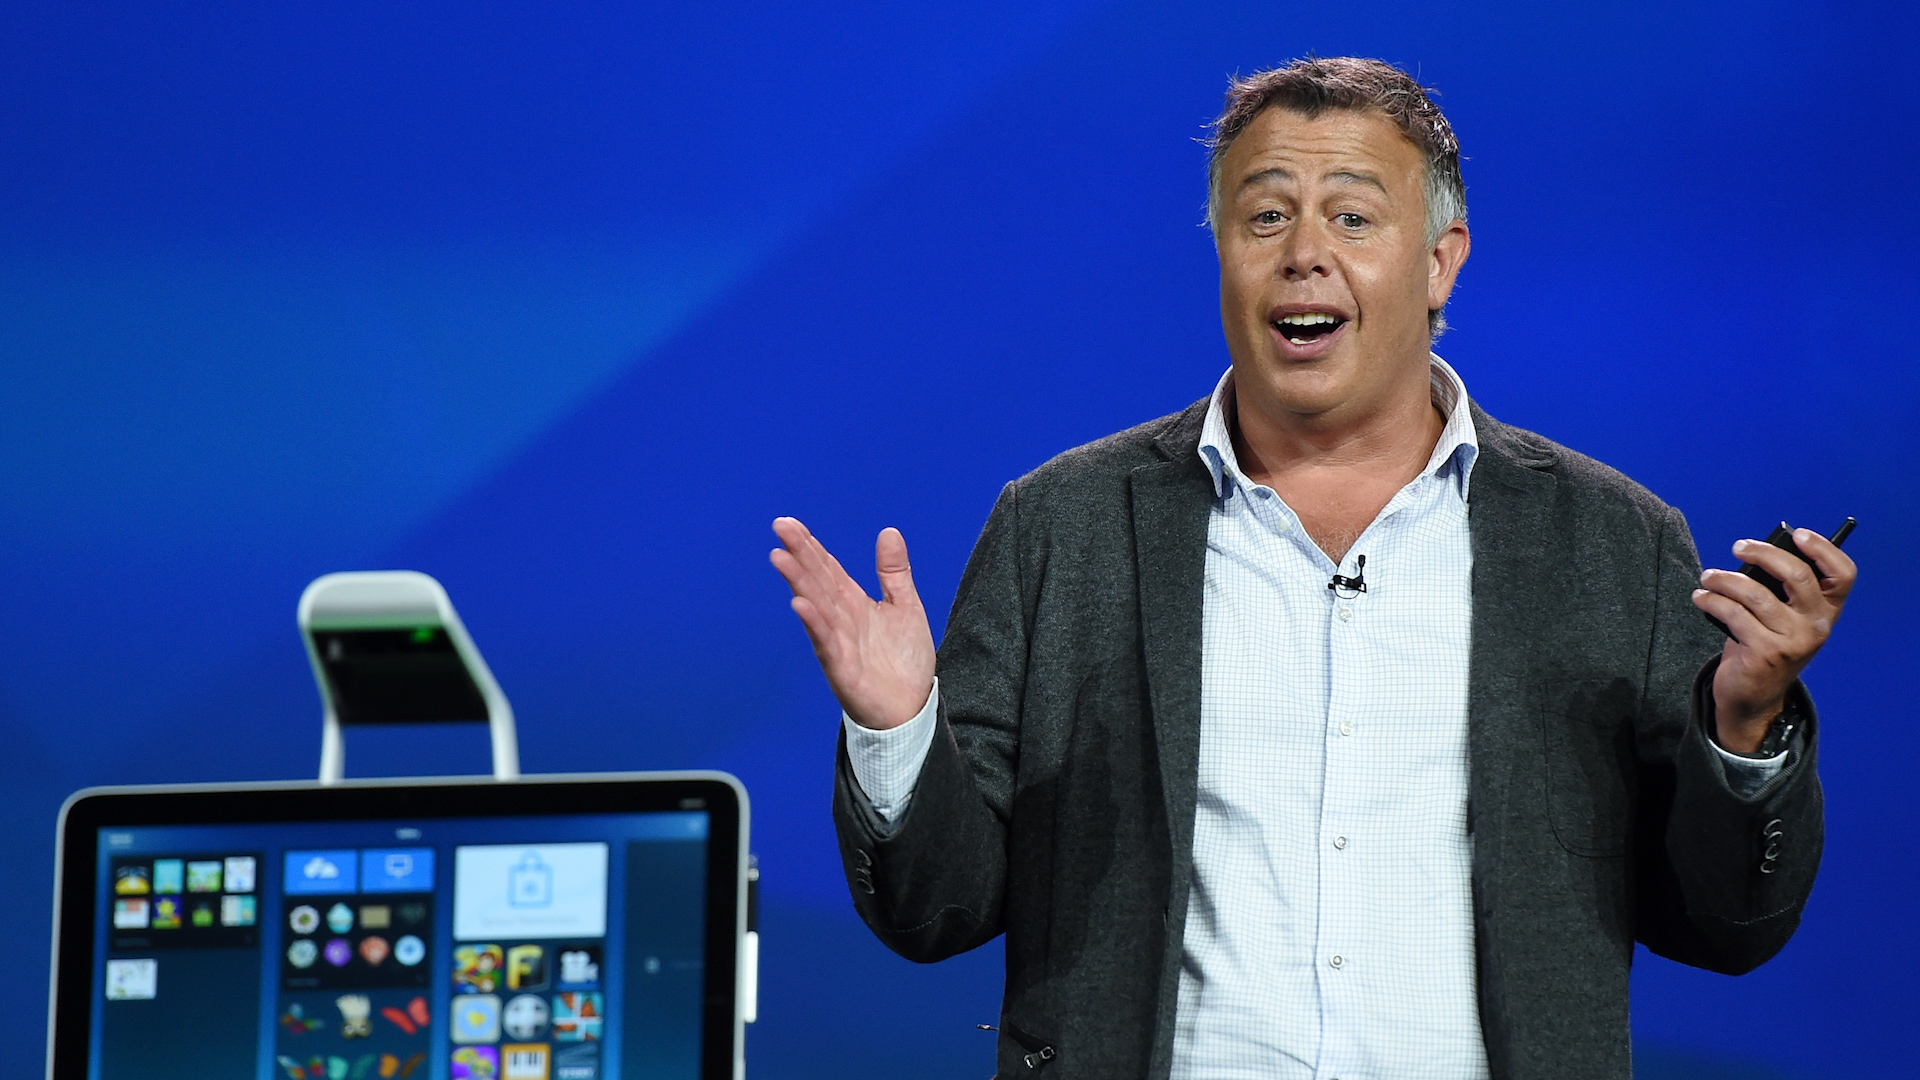 Dion Weisler, CEO of HP Inc.